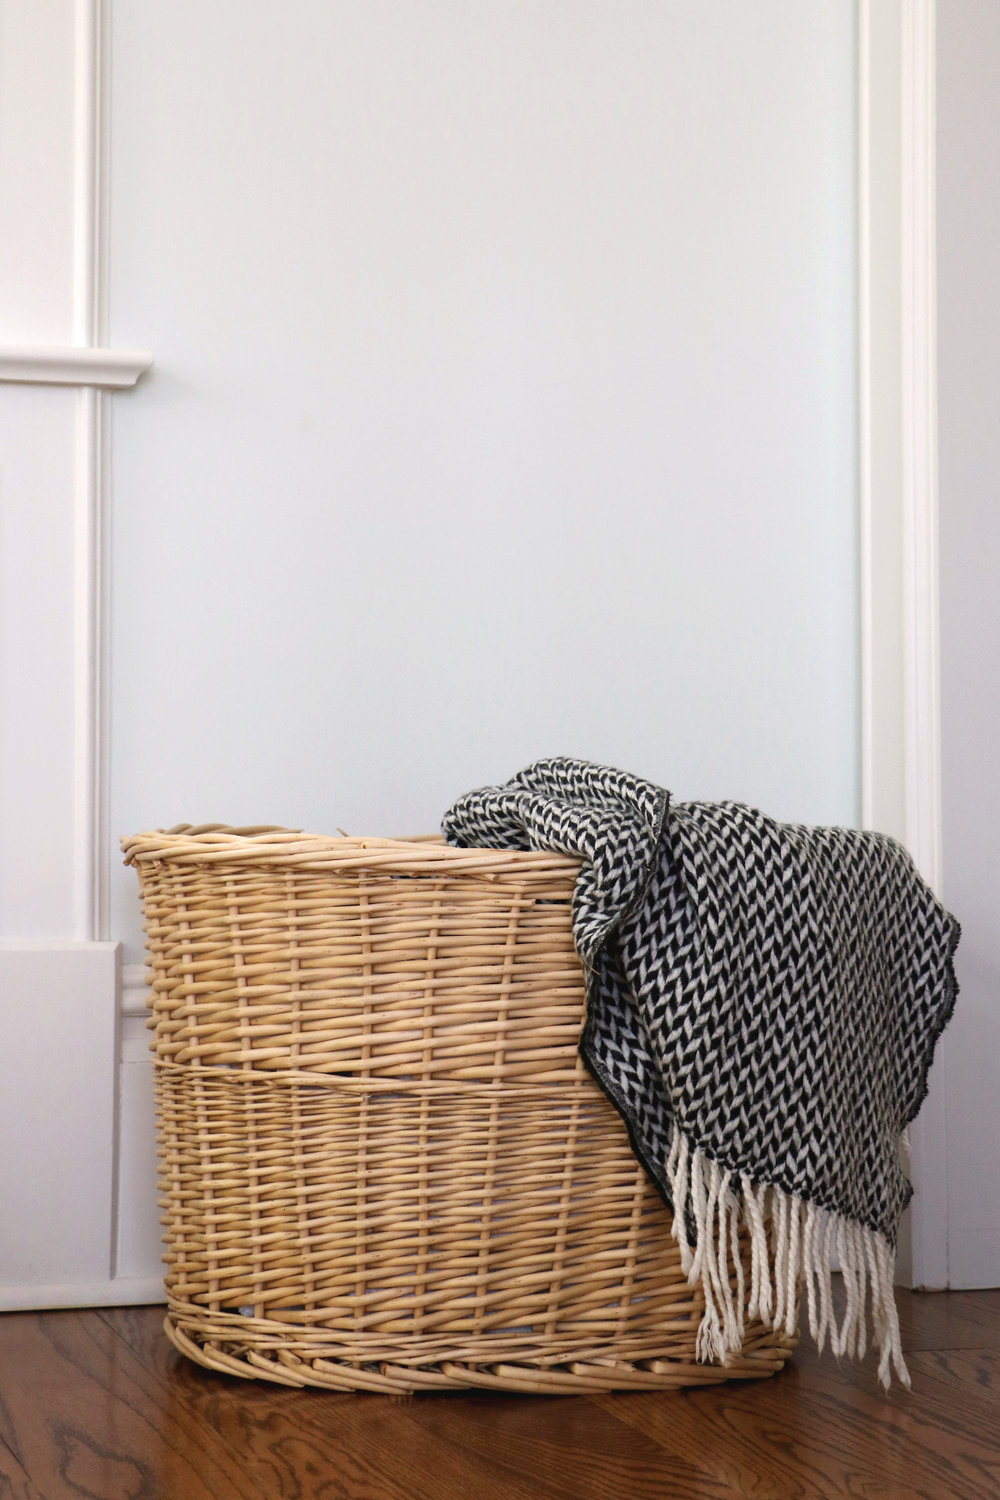 basket love: 4 ways to style them in the home | root + dwell